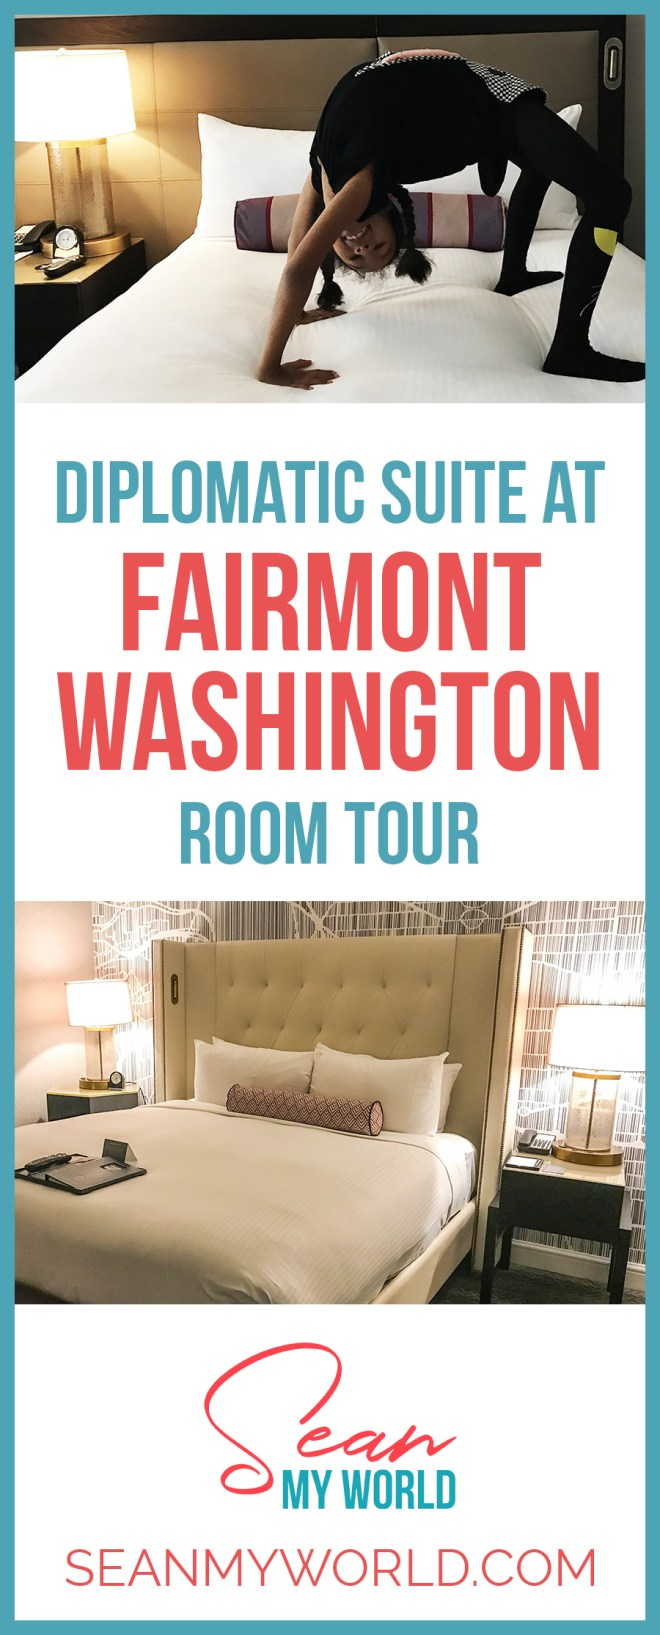 I'm excited to share with you this room tour of the Ambassador Suite at the Fairmont Hotel DC! It's my very first room tour video. Hope you like it!